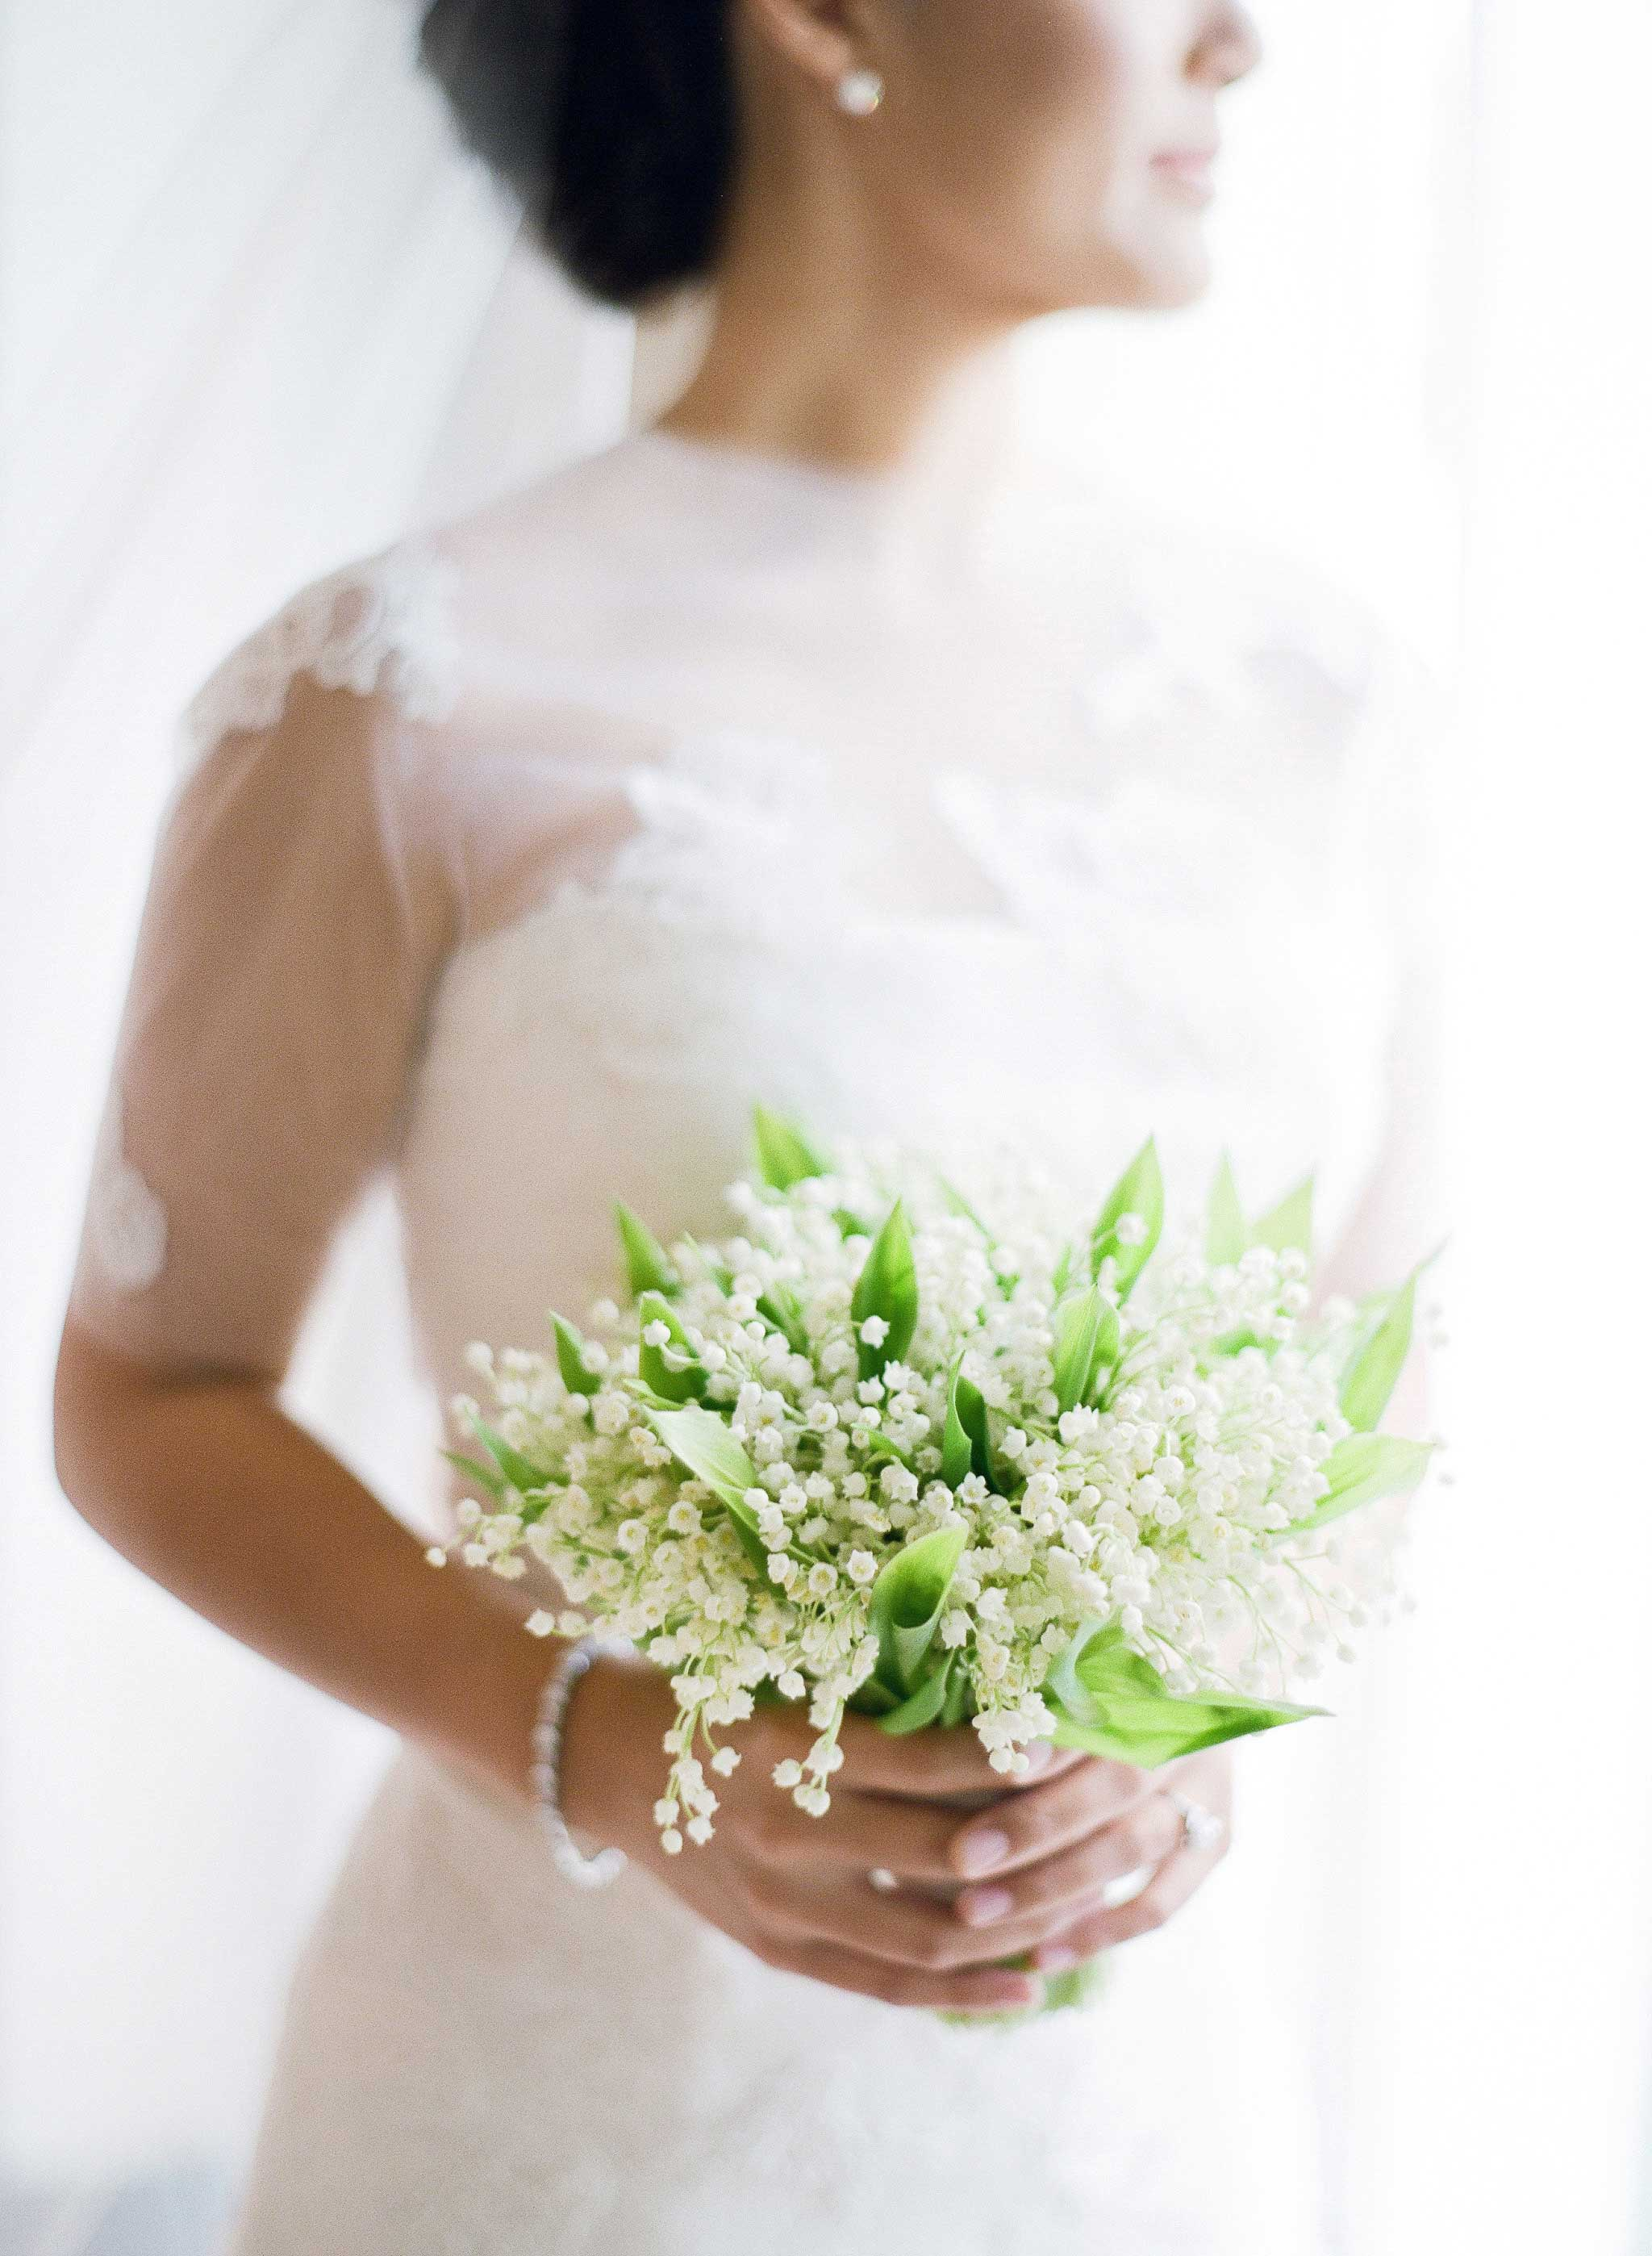 Bride holding small lily of the valley bouquet royal wedding inspiration